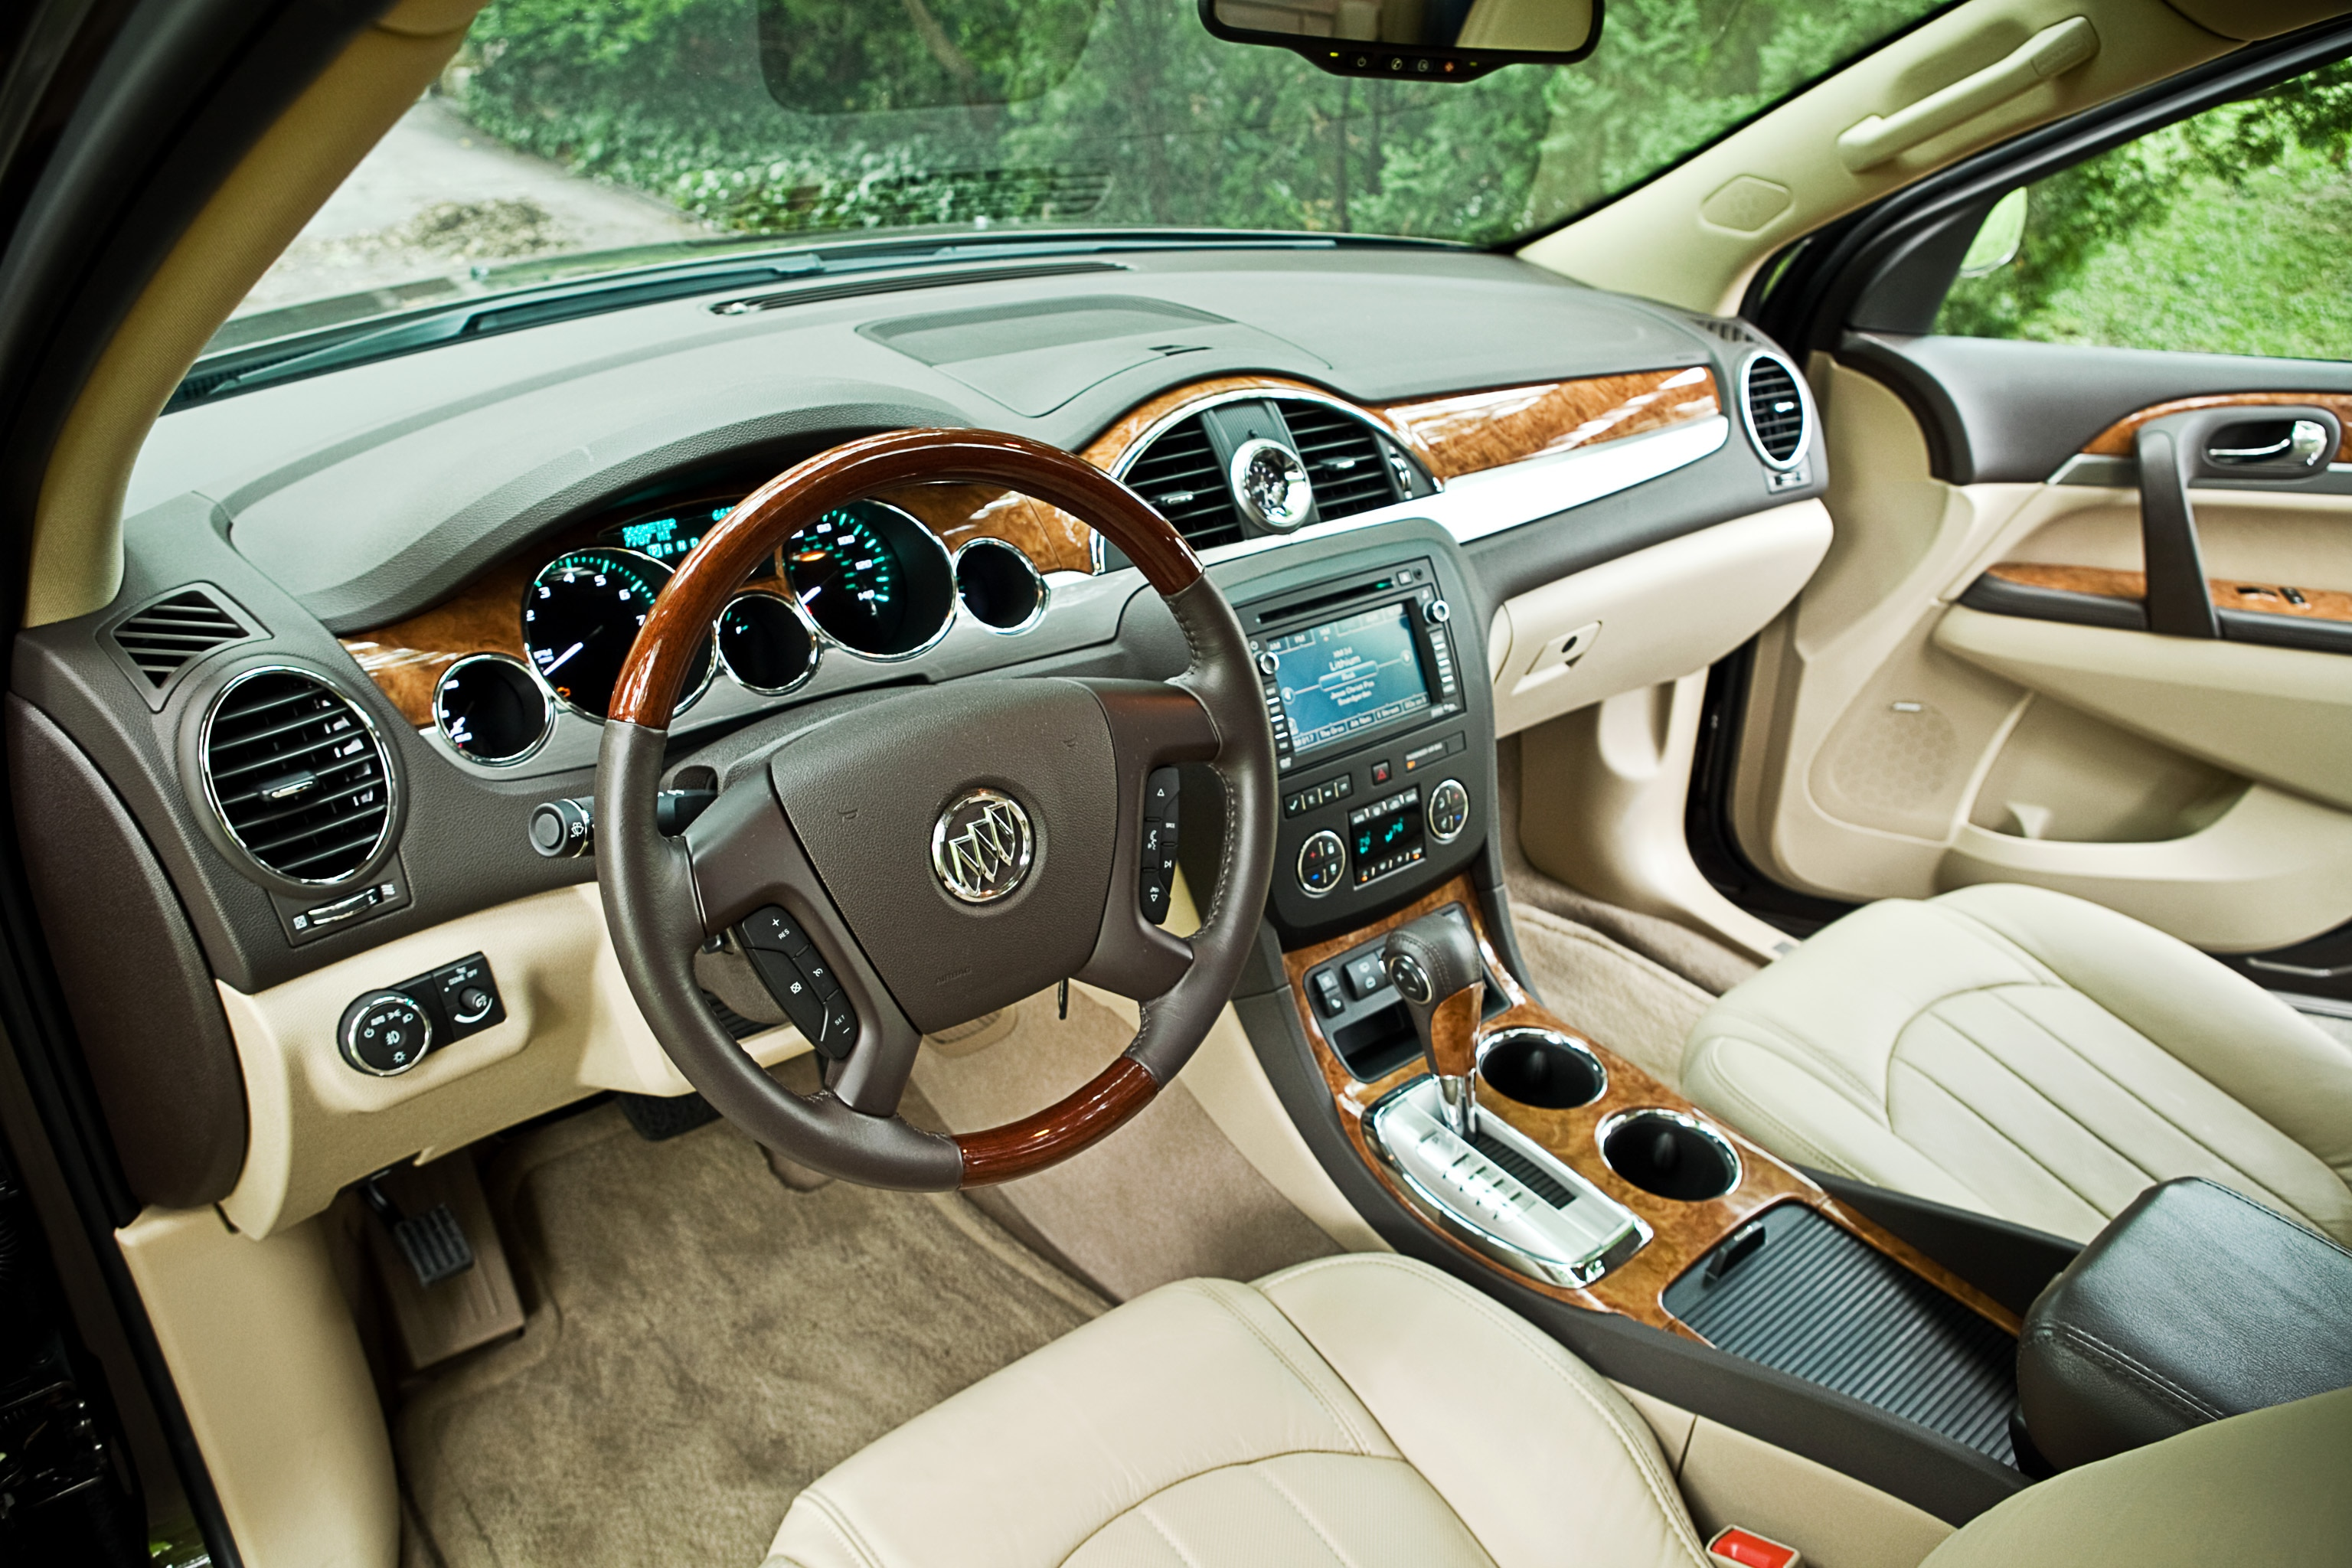 2011 Buick Enclave CXL 2 AWD Editors Notebook